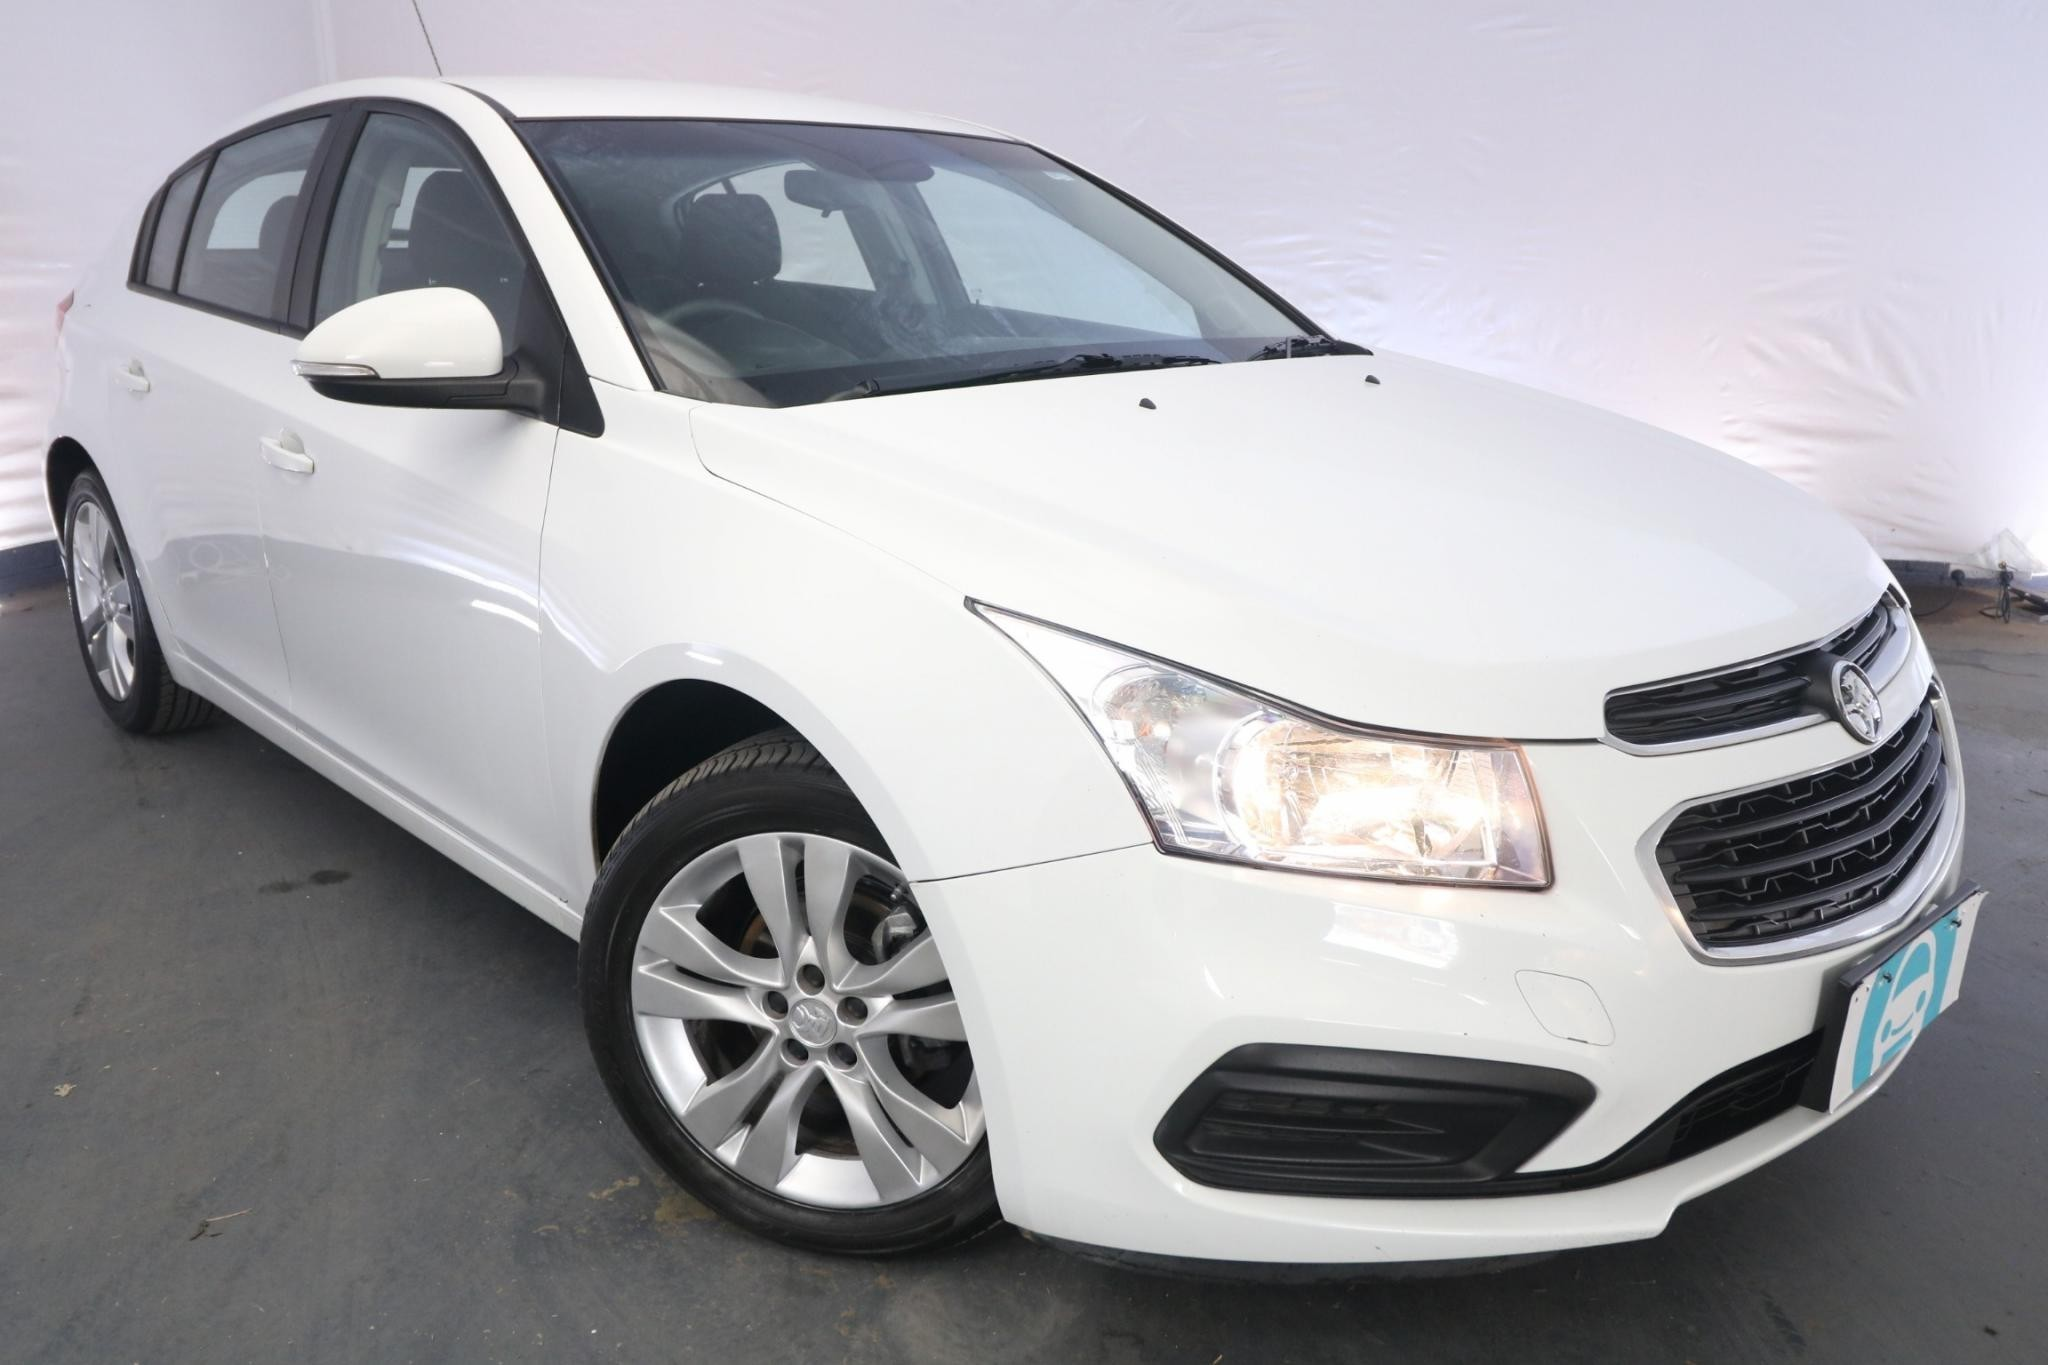 2015 Holden Cruze EQUIPE JH MY15 / 6 Speed Automatic / Hatchback / 1.8L / 4 Cylinder / Petrol / 4x2 / 5 door / Model Year '15 February release SIF15B